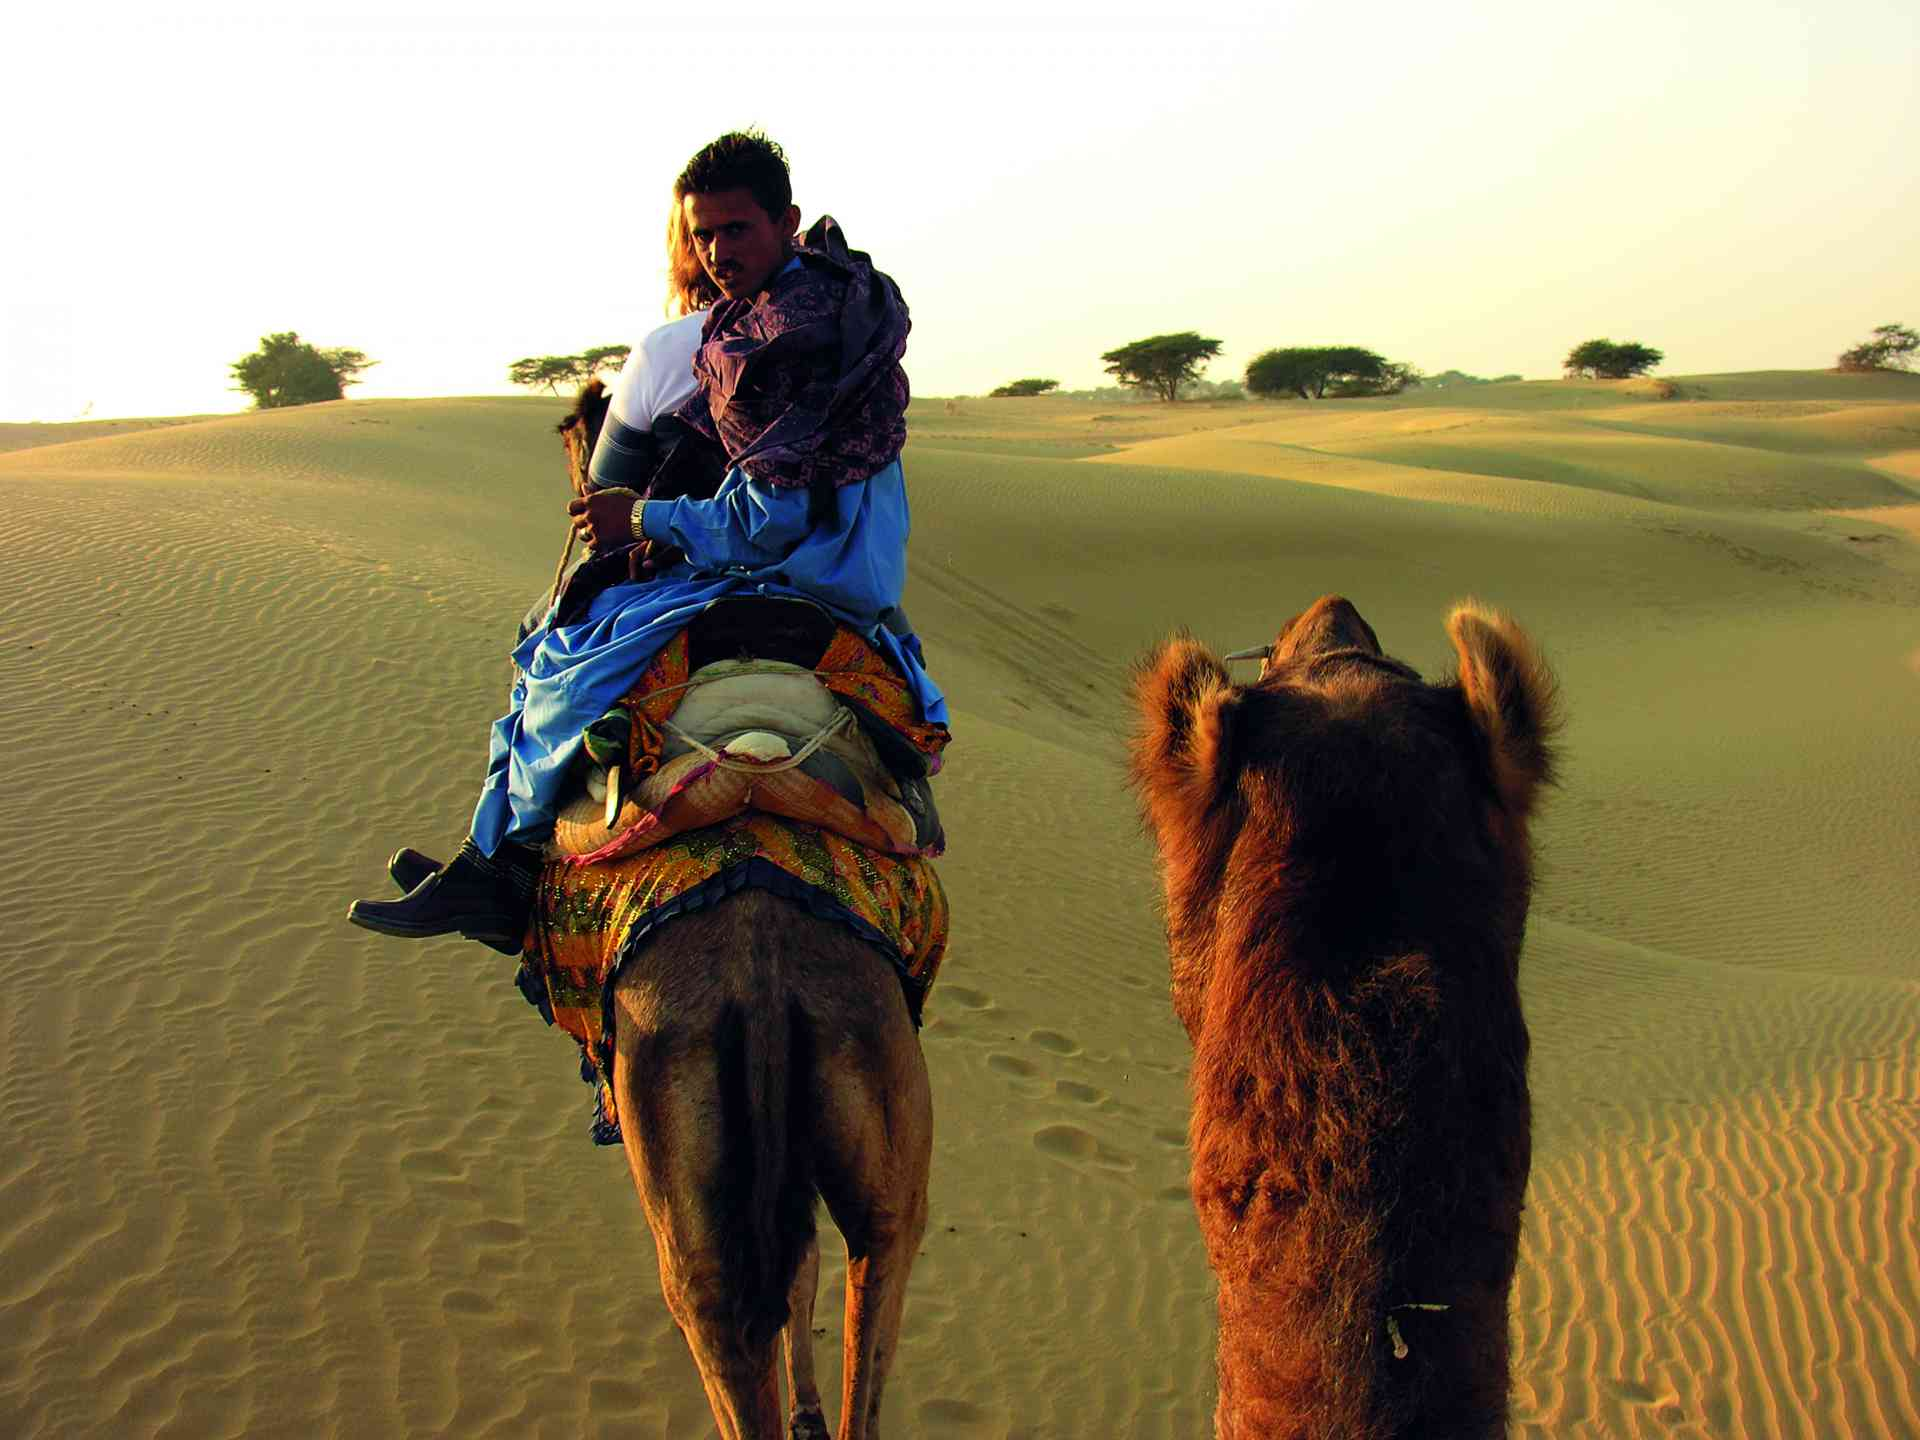 Camel Safari, Manvar Desert, India